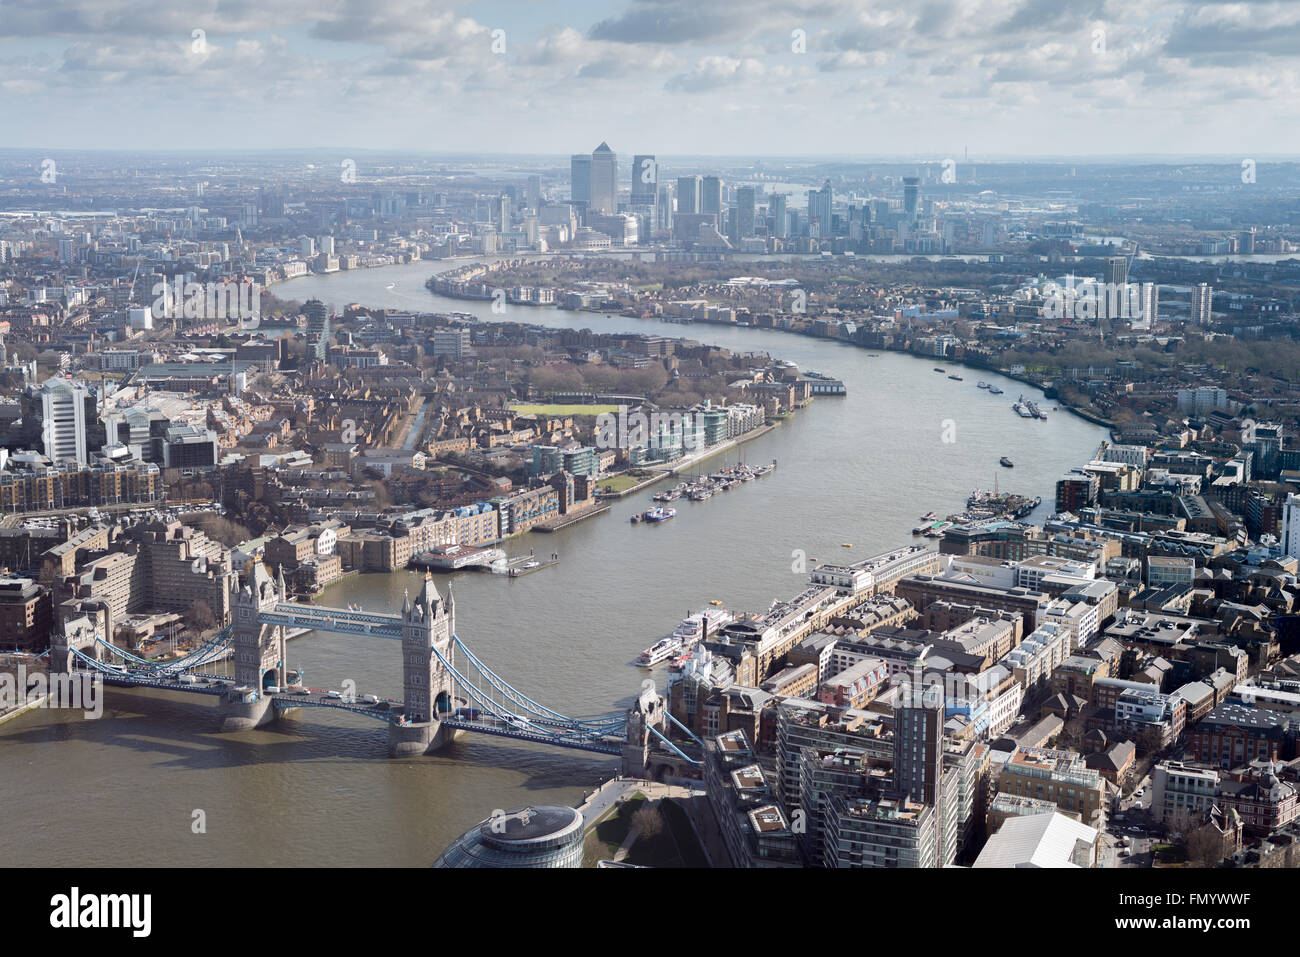 Aerial view of the River Thames and Tower Bridge in London, UK - Stock Image